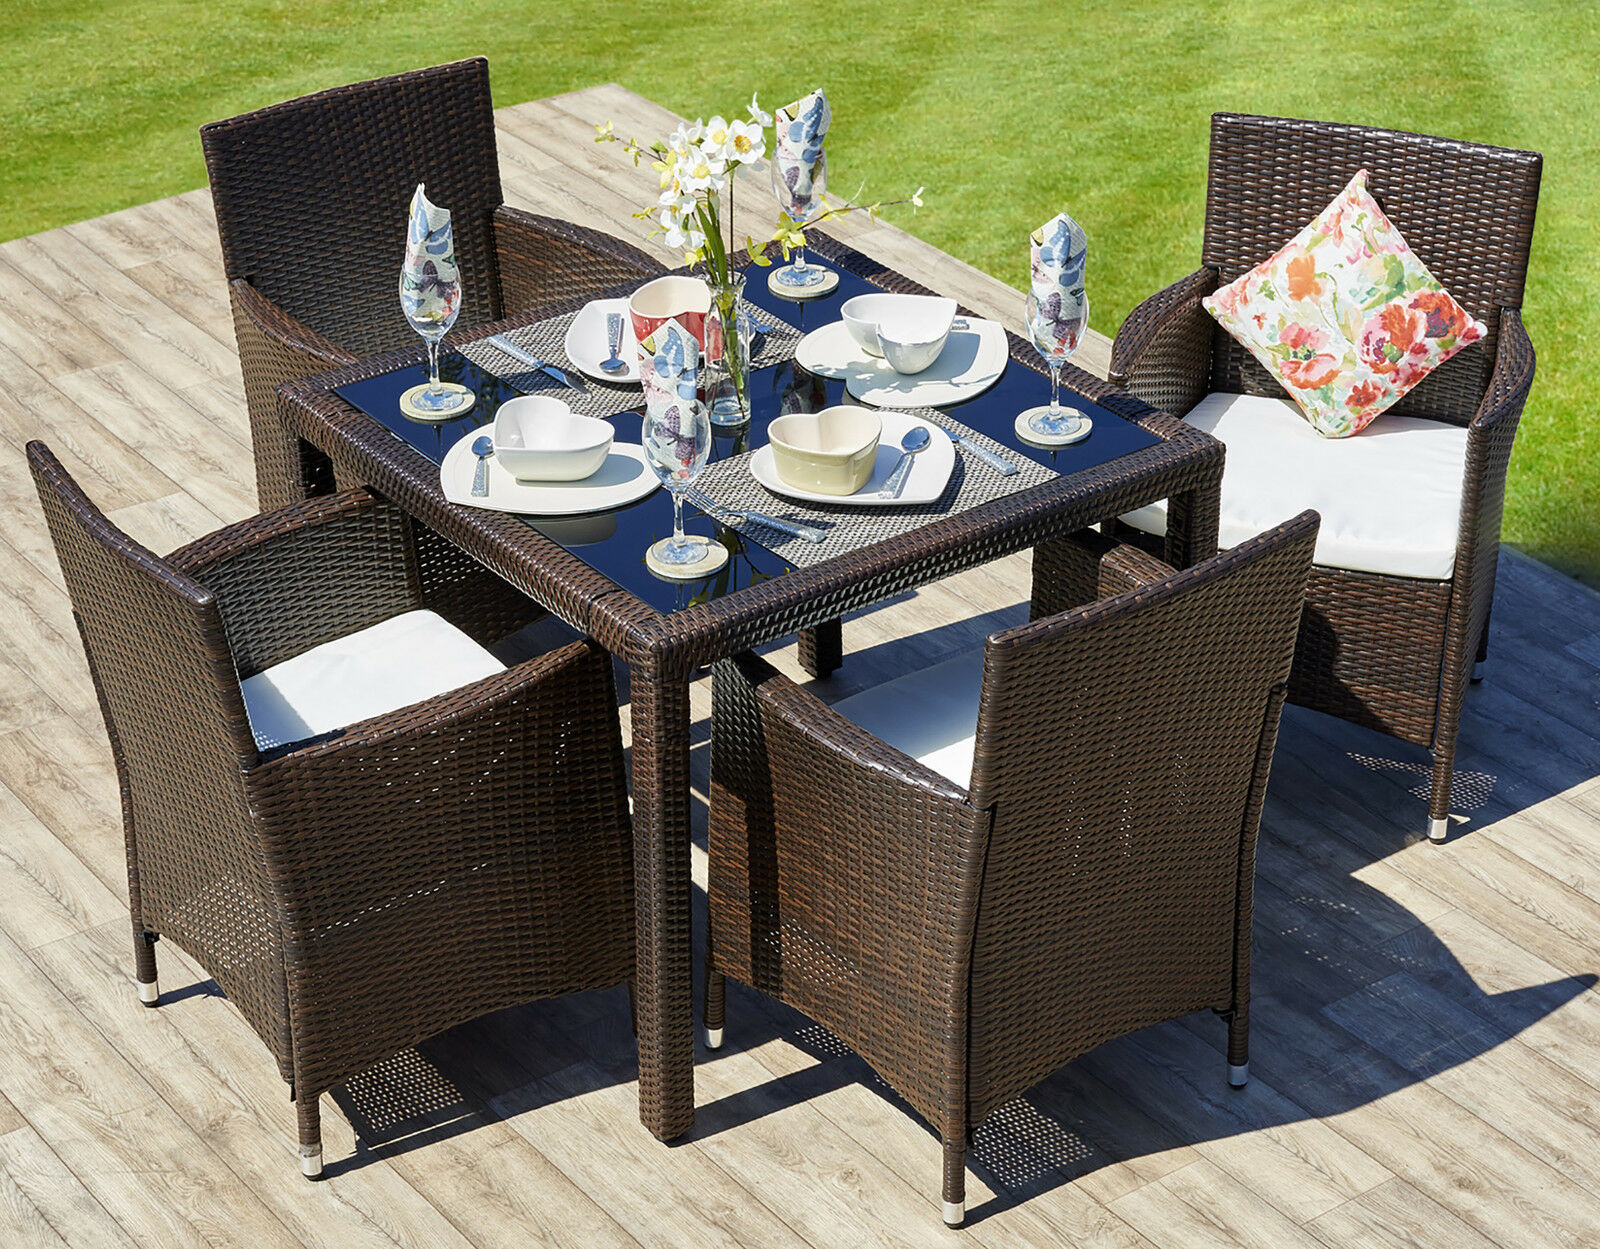 Rattan Outdoor Garden Furniture Dining Table Set 4 Chairs